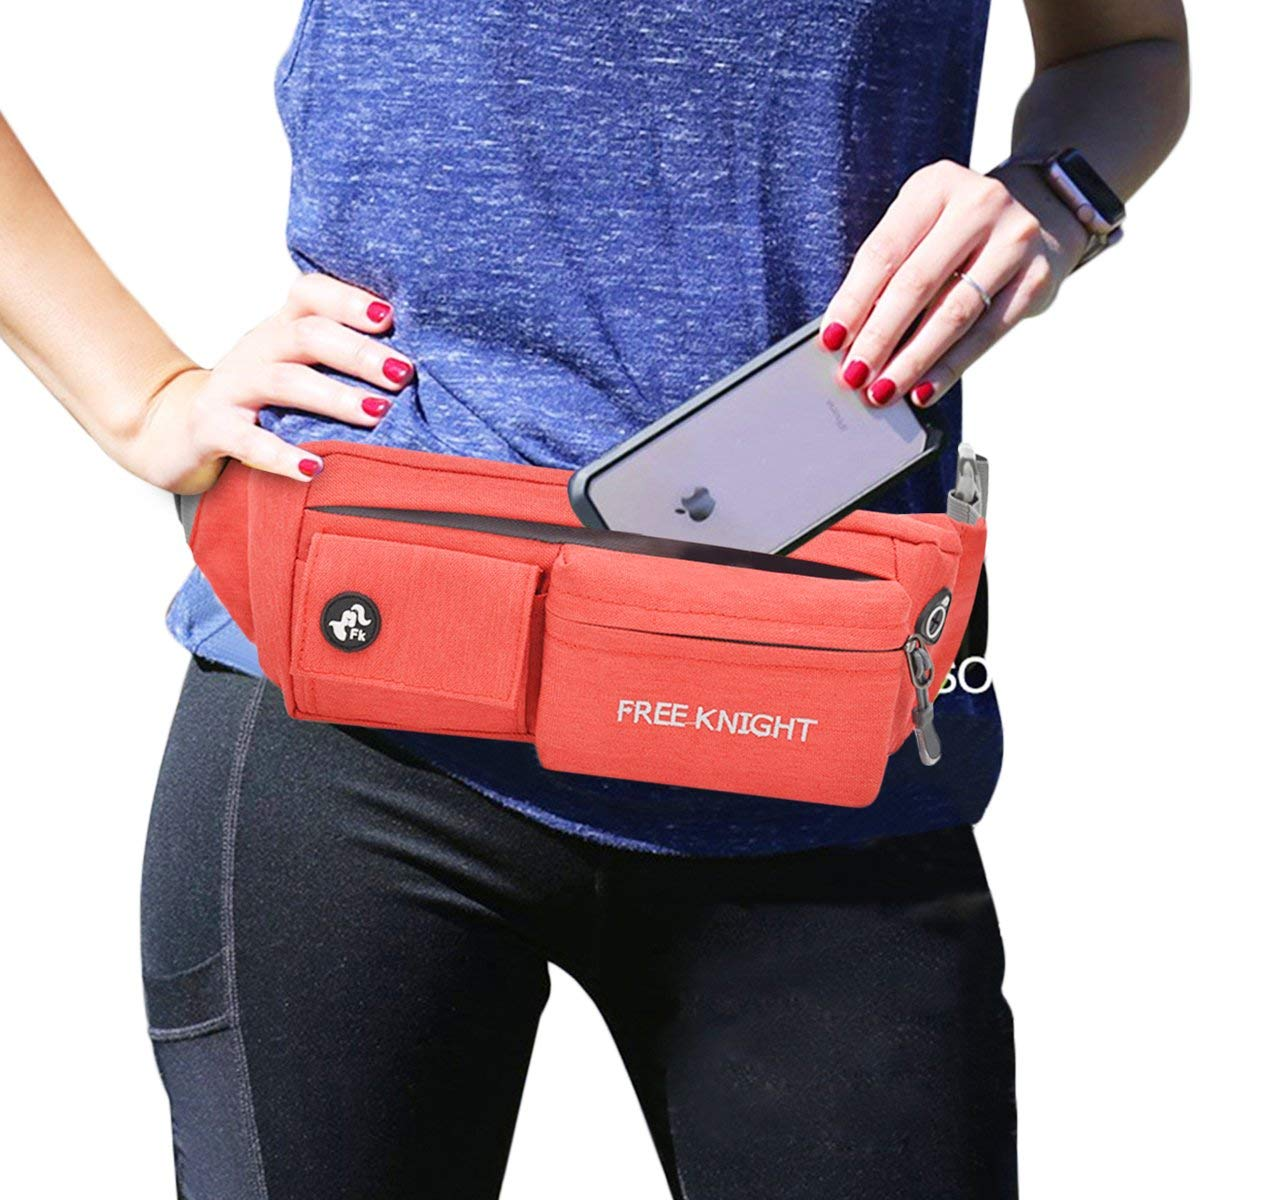 6d7e338a3ac Get Quotations · Sports Fanny Pack Waist Bag Waterproof Running Belt With  Adjustable Strap For Traveling Outdoors Workout Stylish